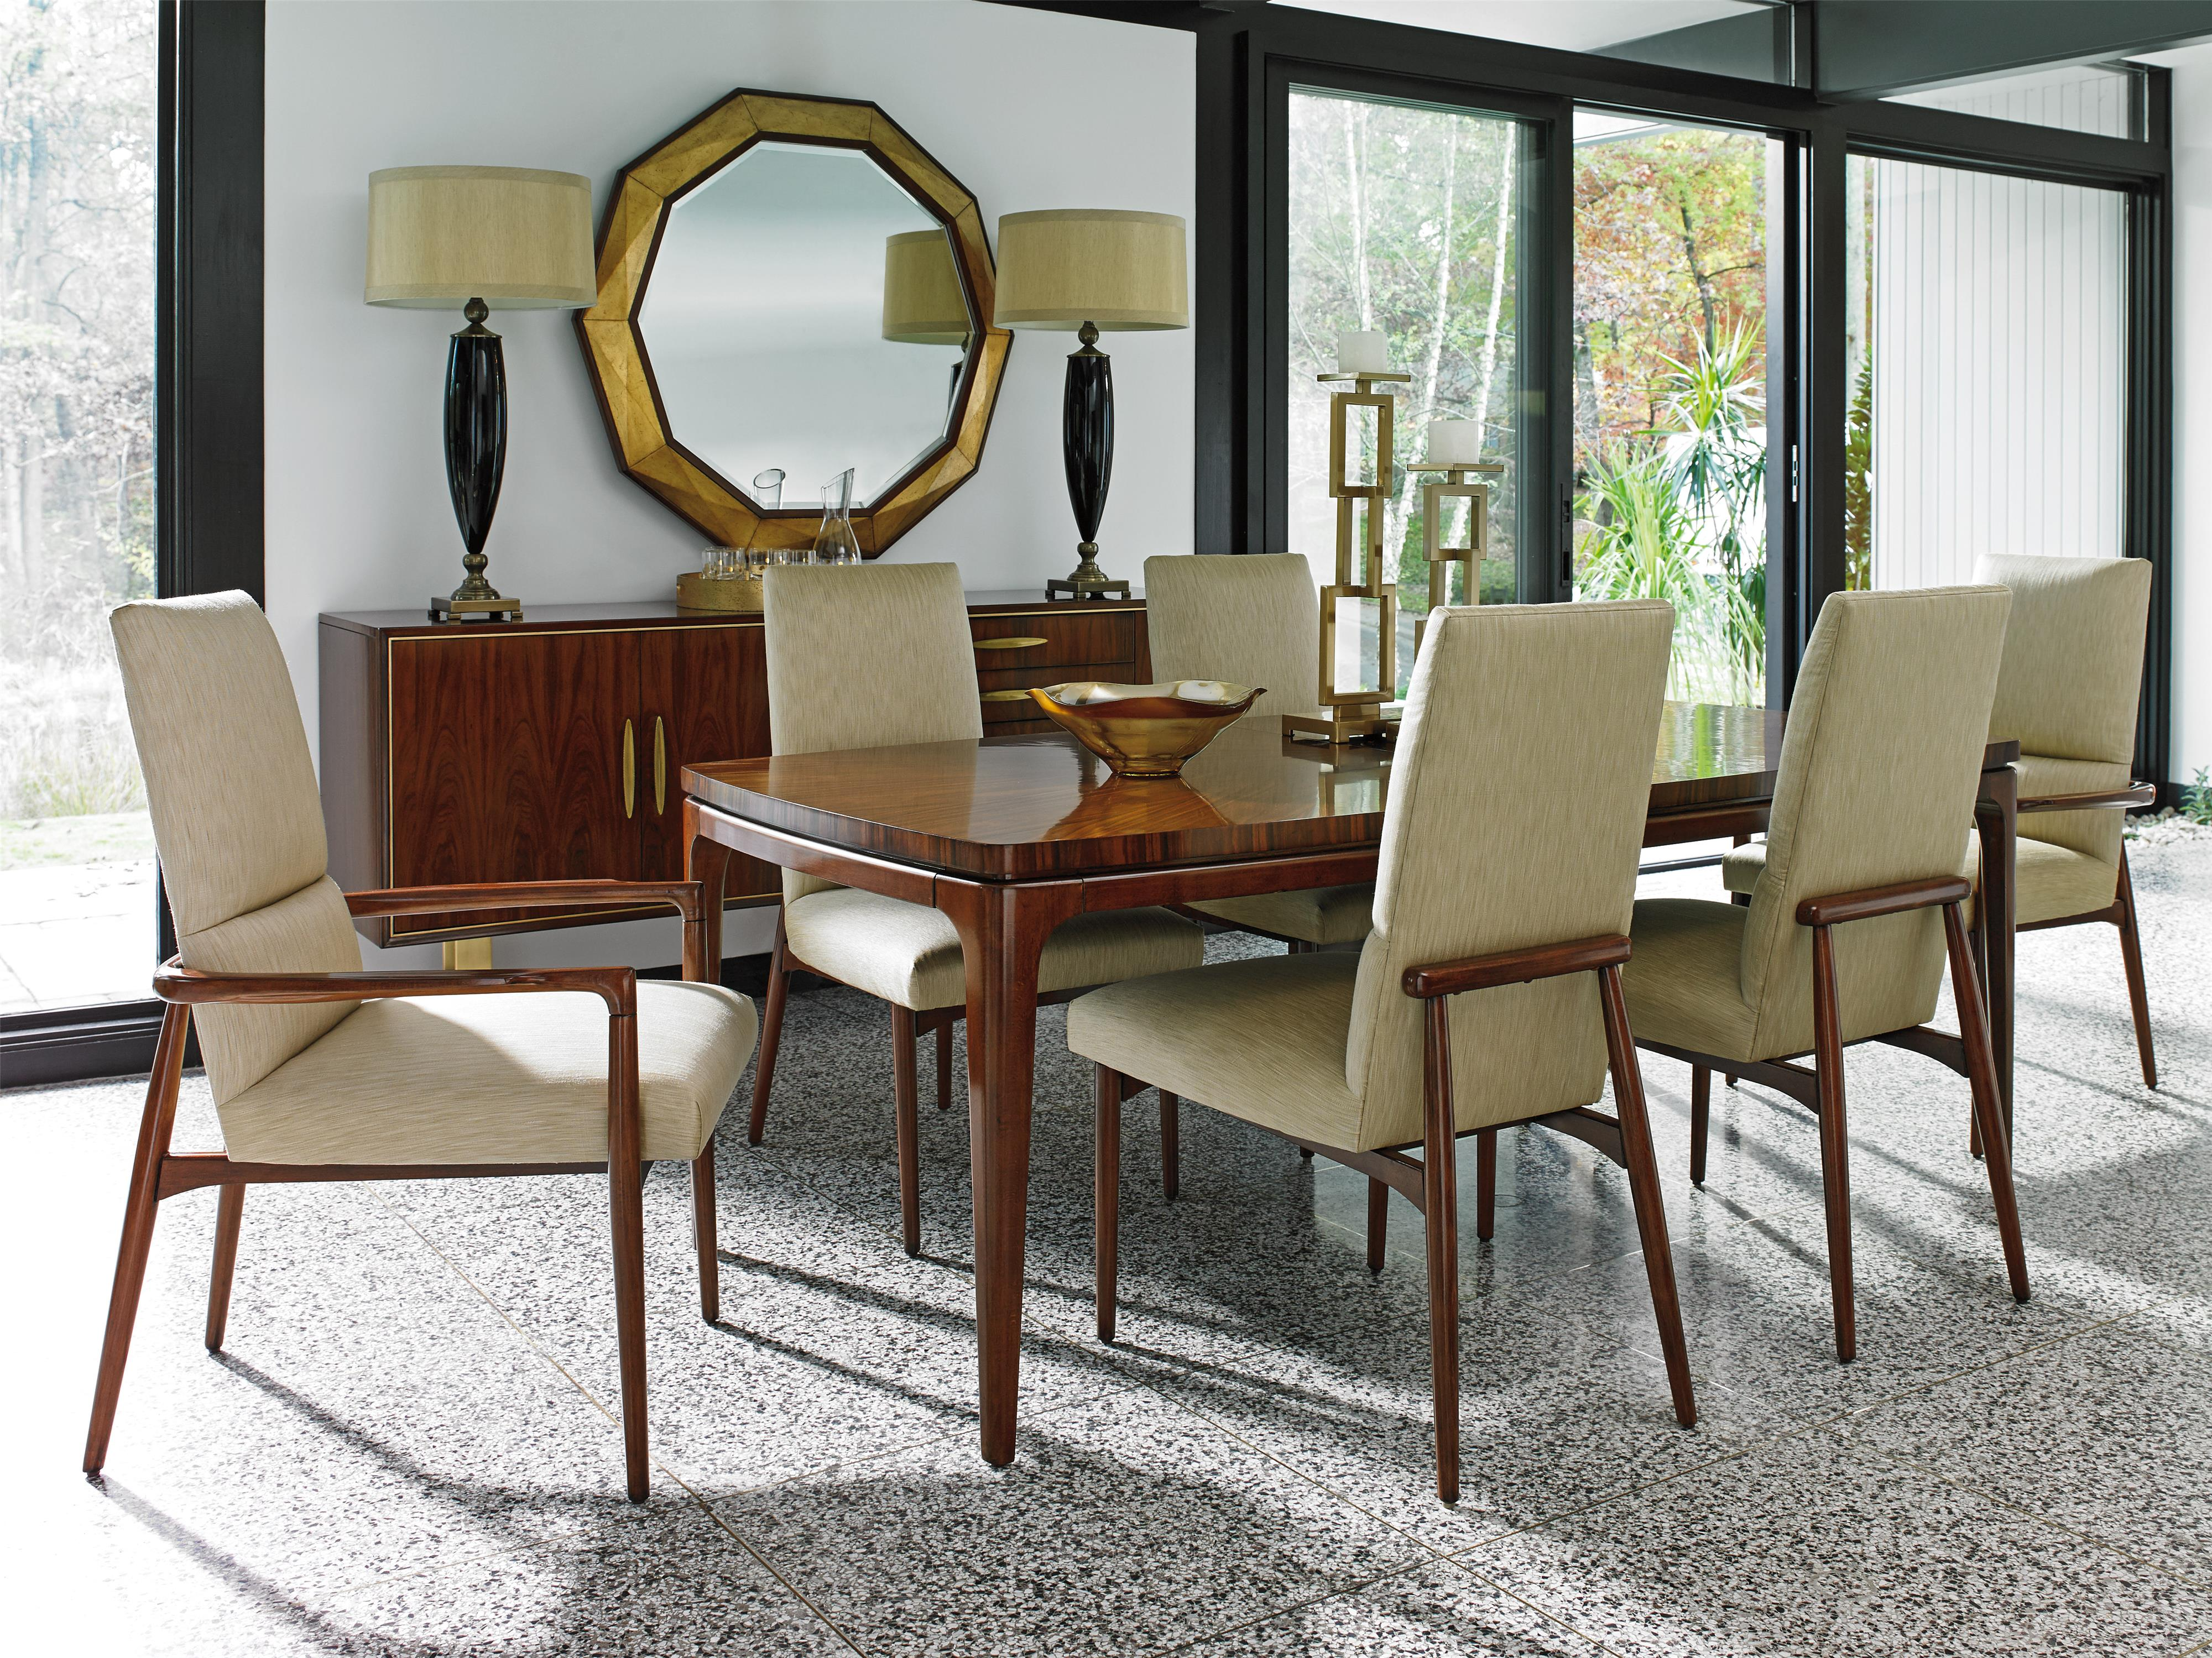 Lexington TAKE FIVE Formal Dining Room Group - Item Number: 723 Dining Room Group 2